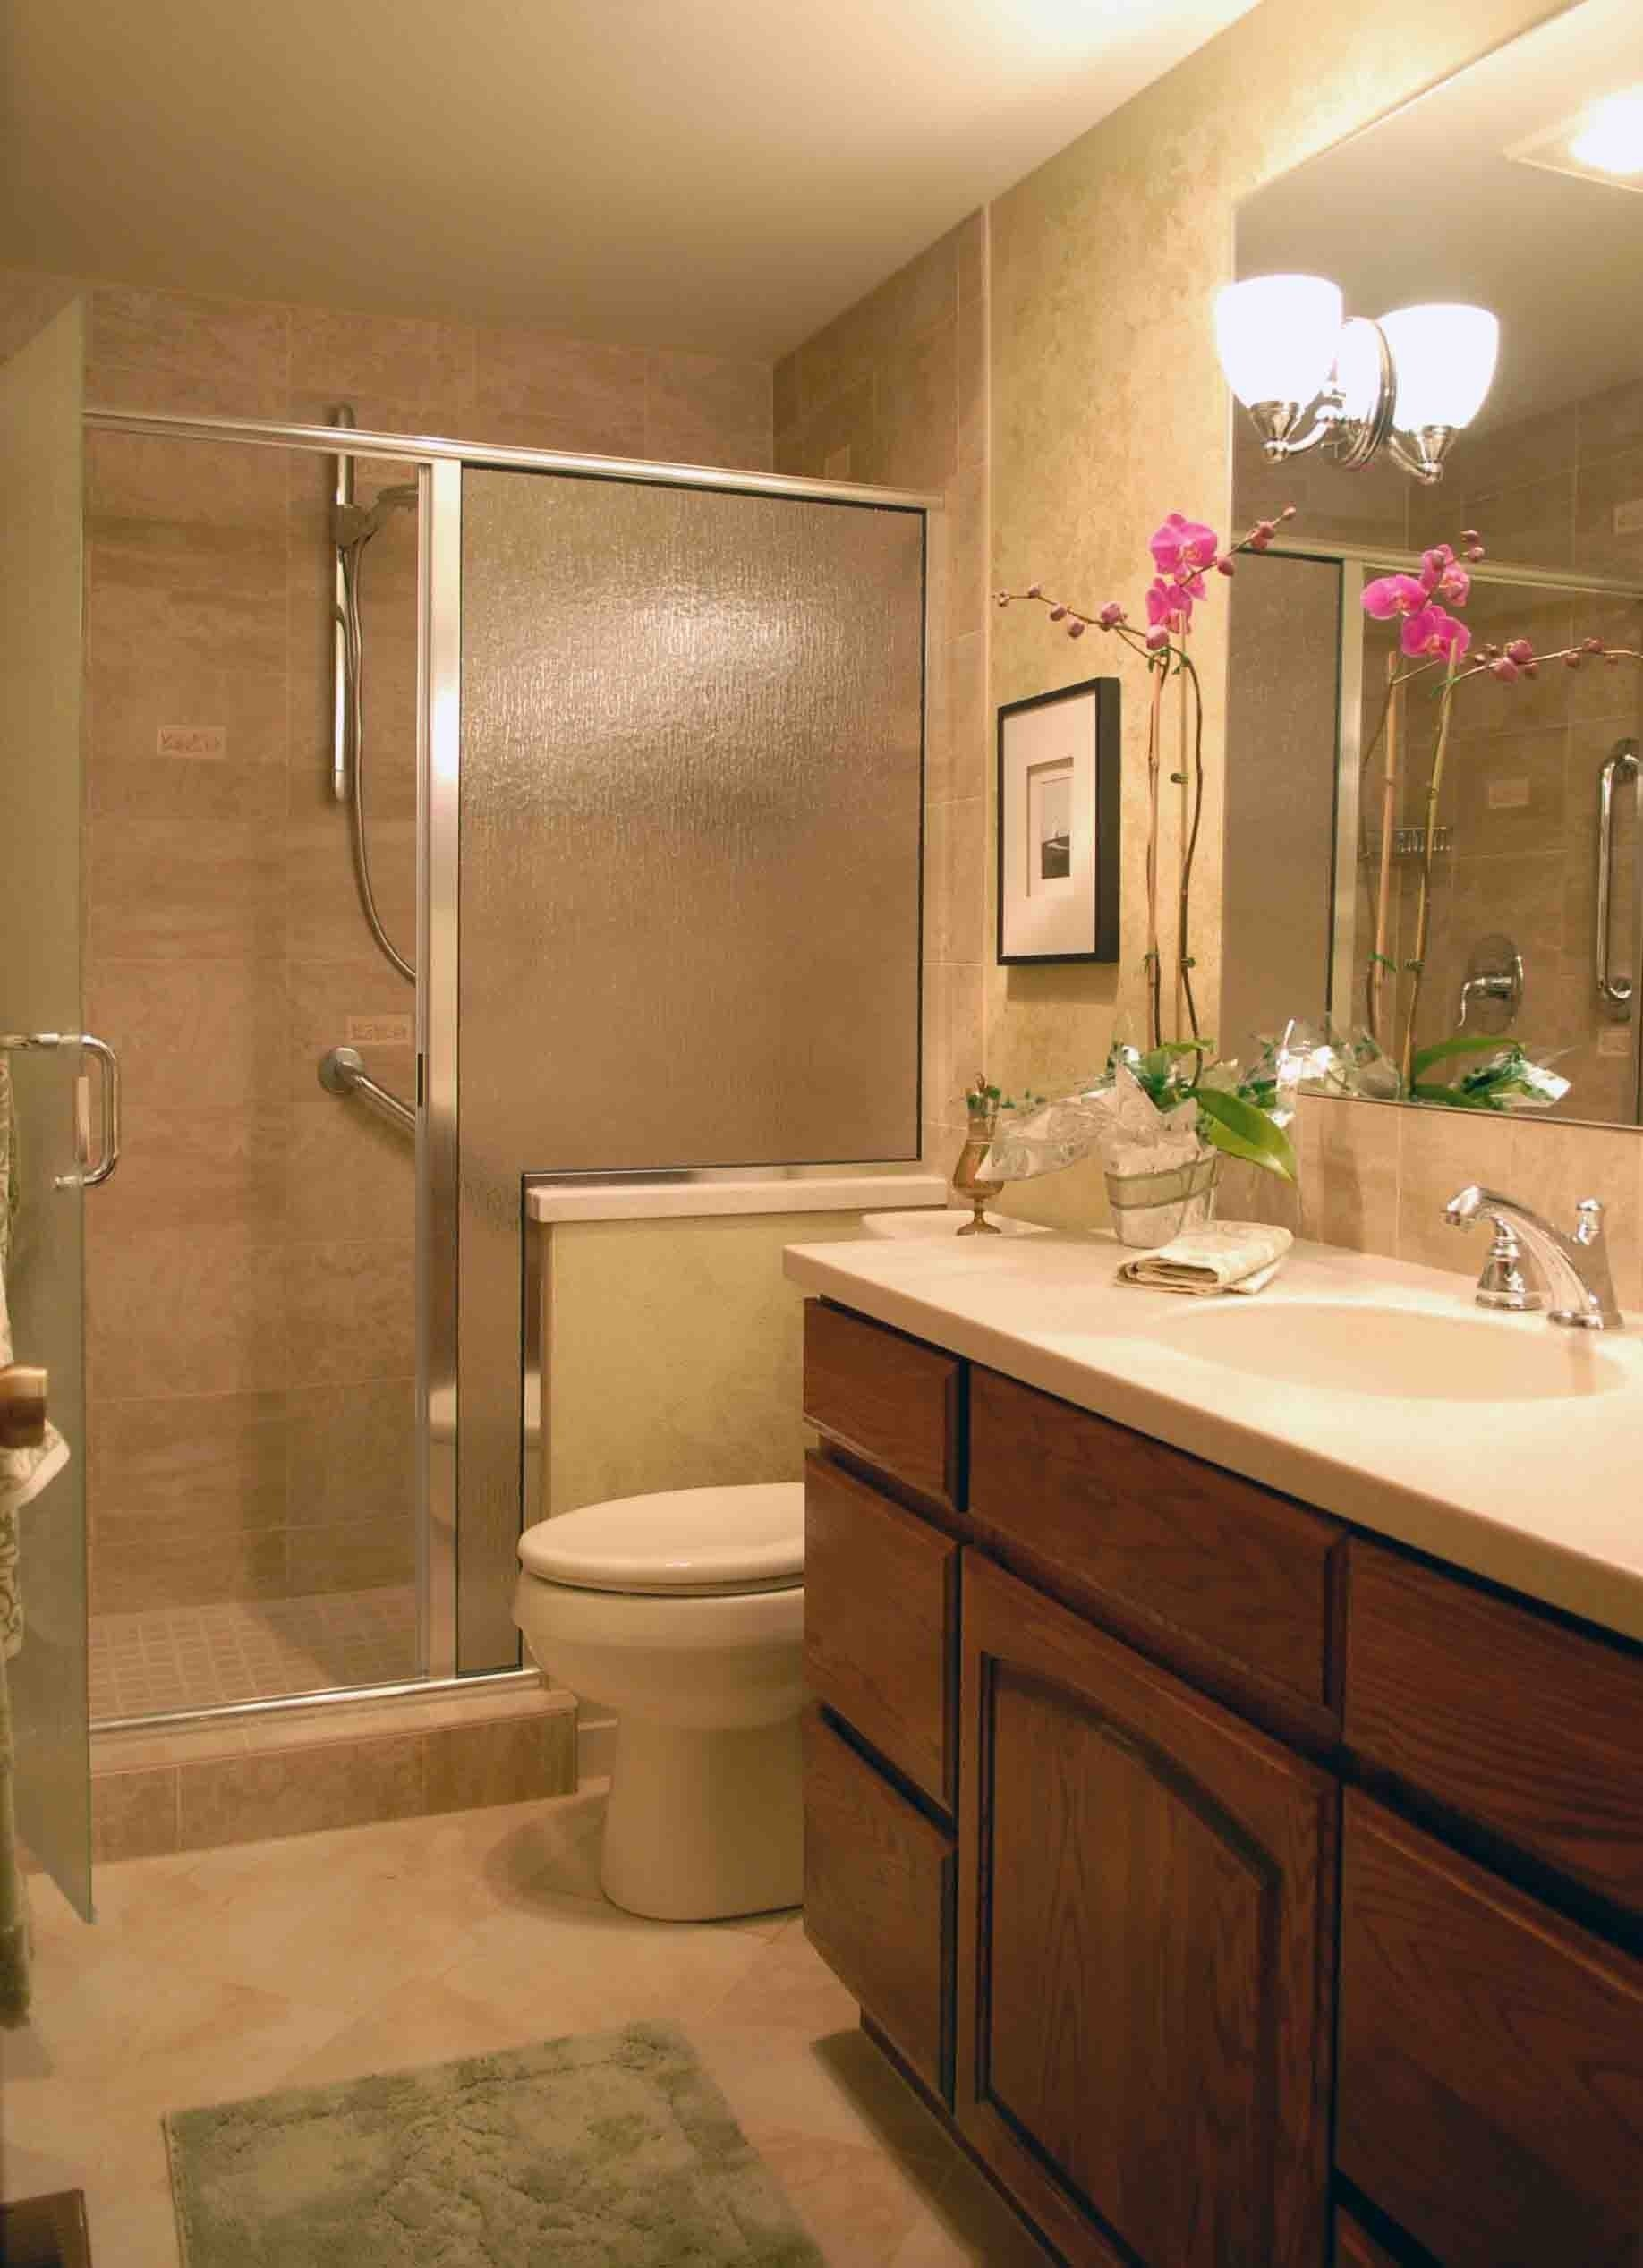 design bathrooms small space inspirational bathroom design marvelous